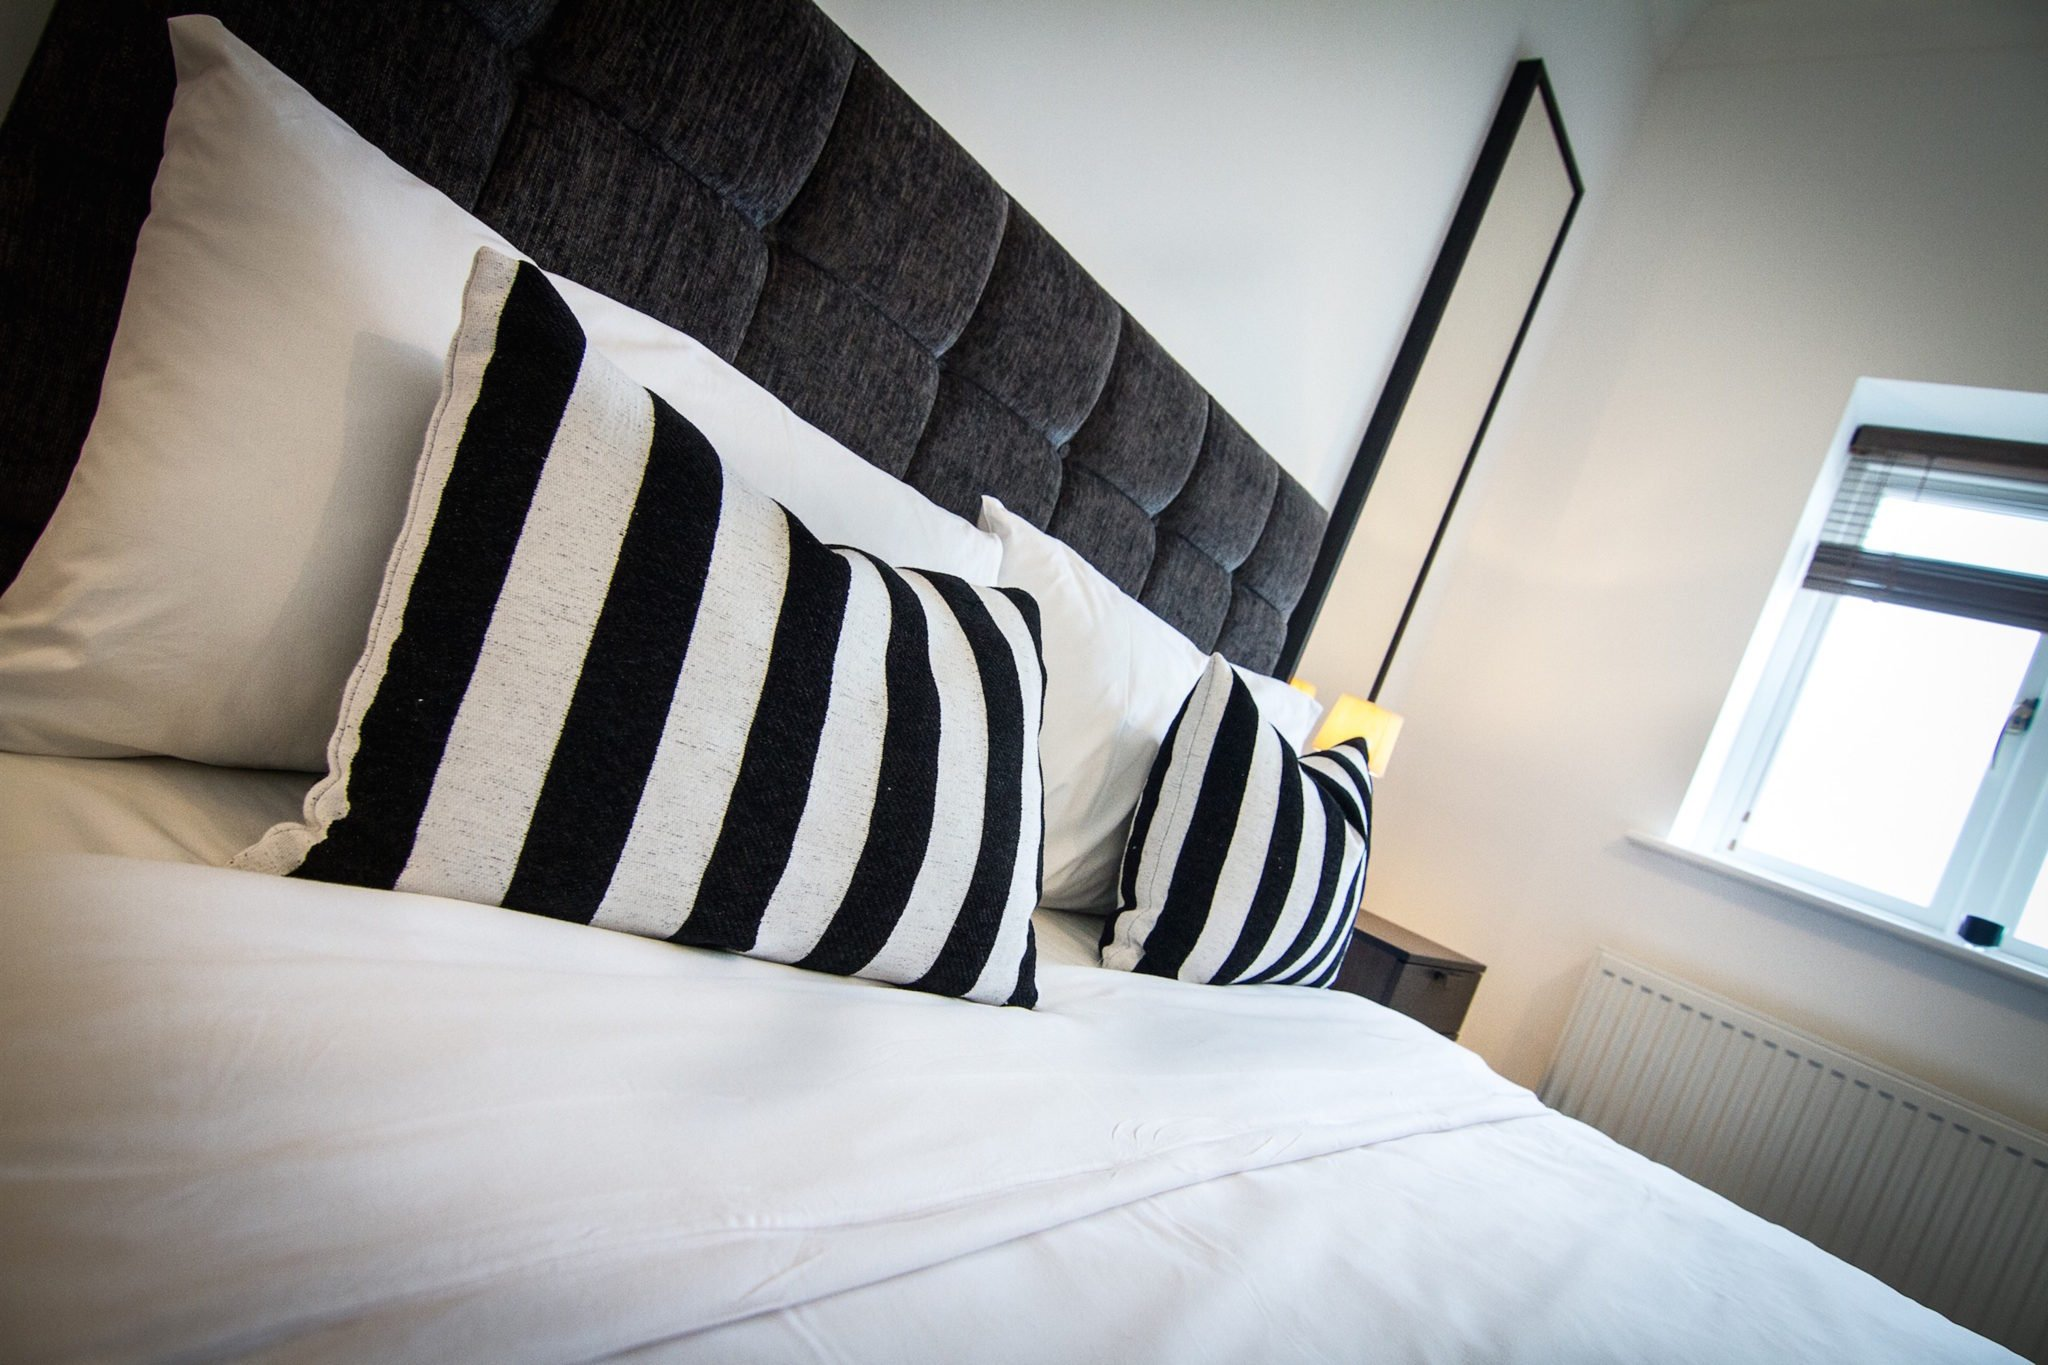 Serviced-Accommodation-Northampton-City-Centre-|-Serviced-Apartments-Northampton-UK-|-Corporate-&-Holiday-Accommodation-Midlands-|-BEST-RATES---BOOK-NOW-|-Urban-Stay